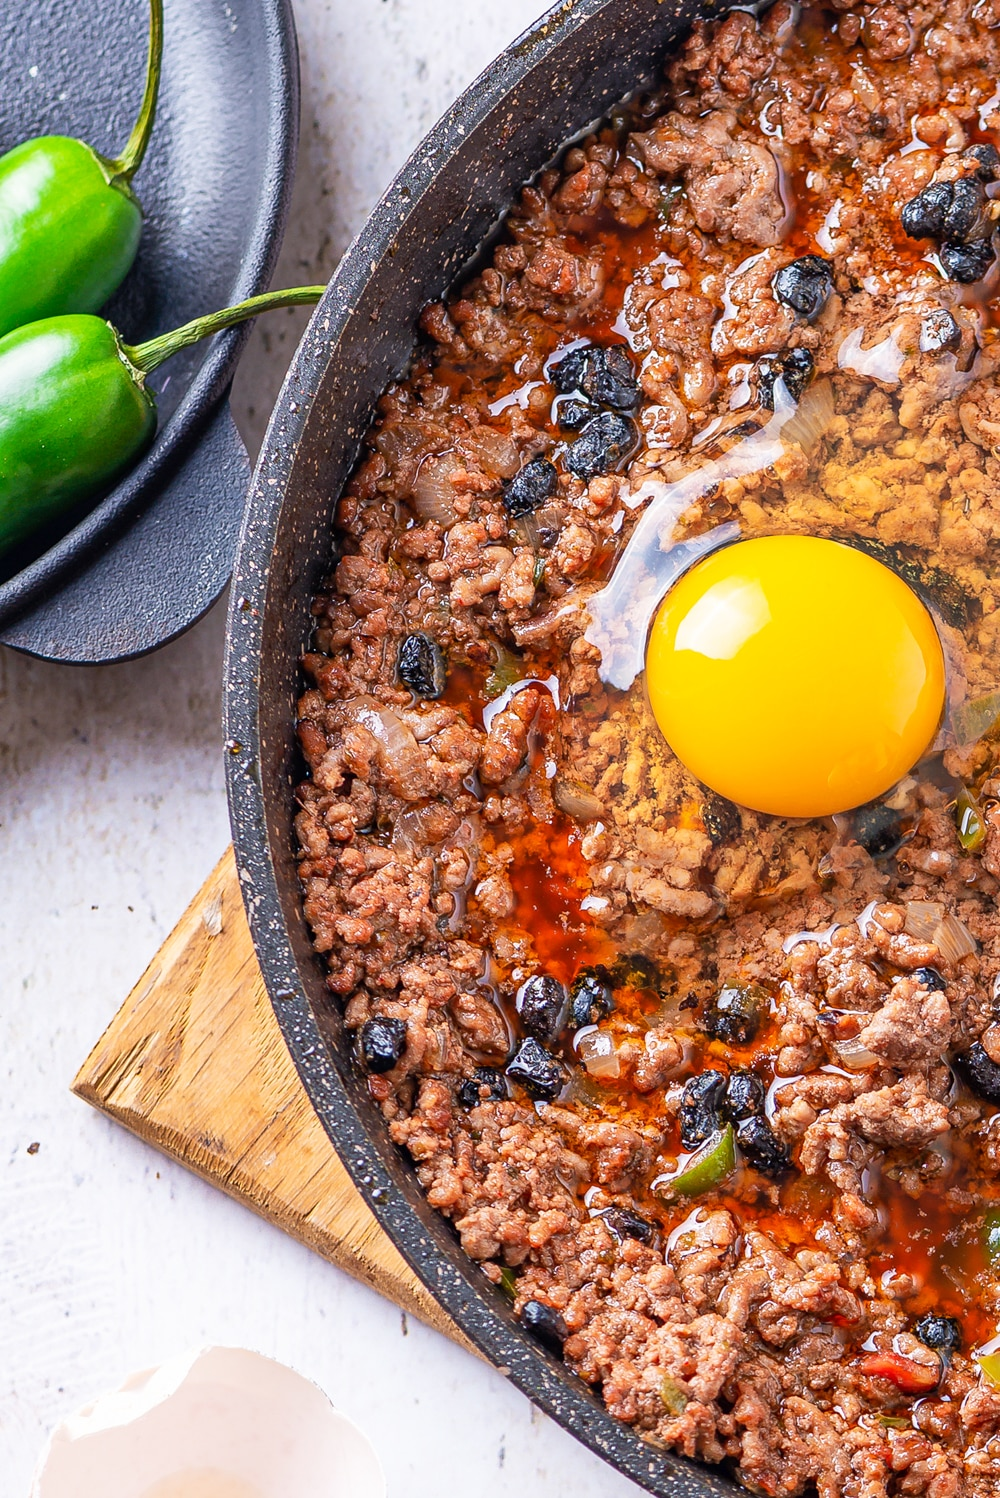 An egg in a skillet filled with ground beef and black soybeans.